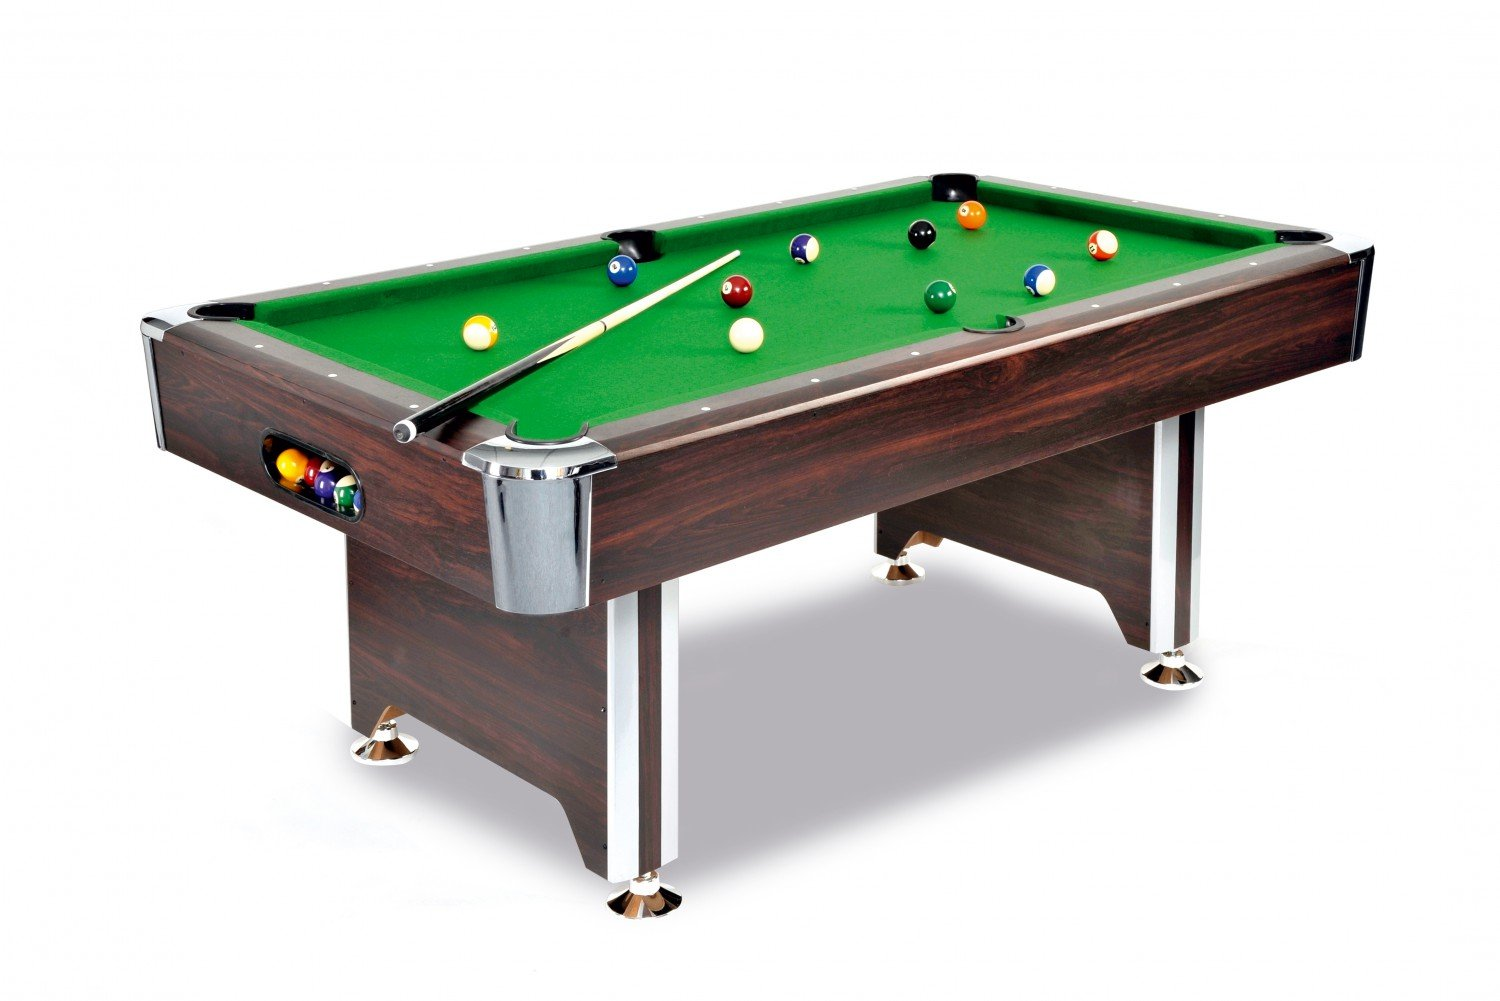 Sedona Billiard Table Ft Amazoncouk Sports Outdoors - Showood pool table